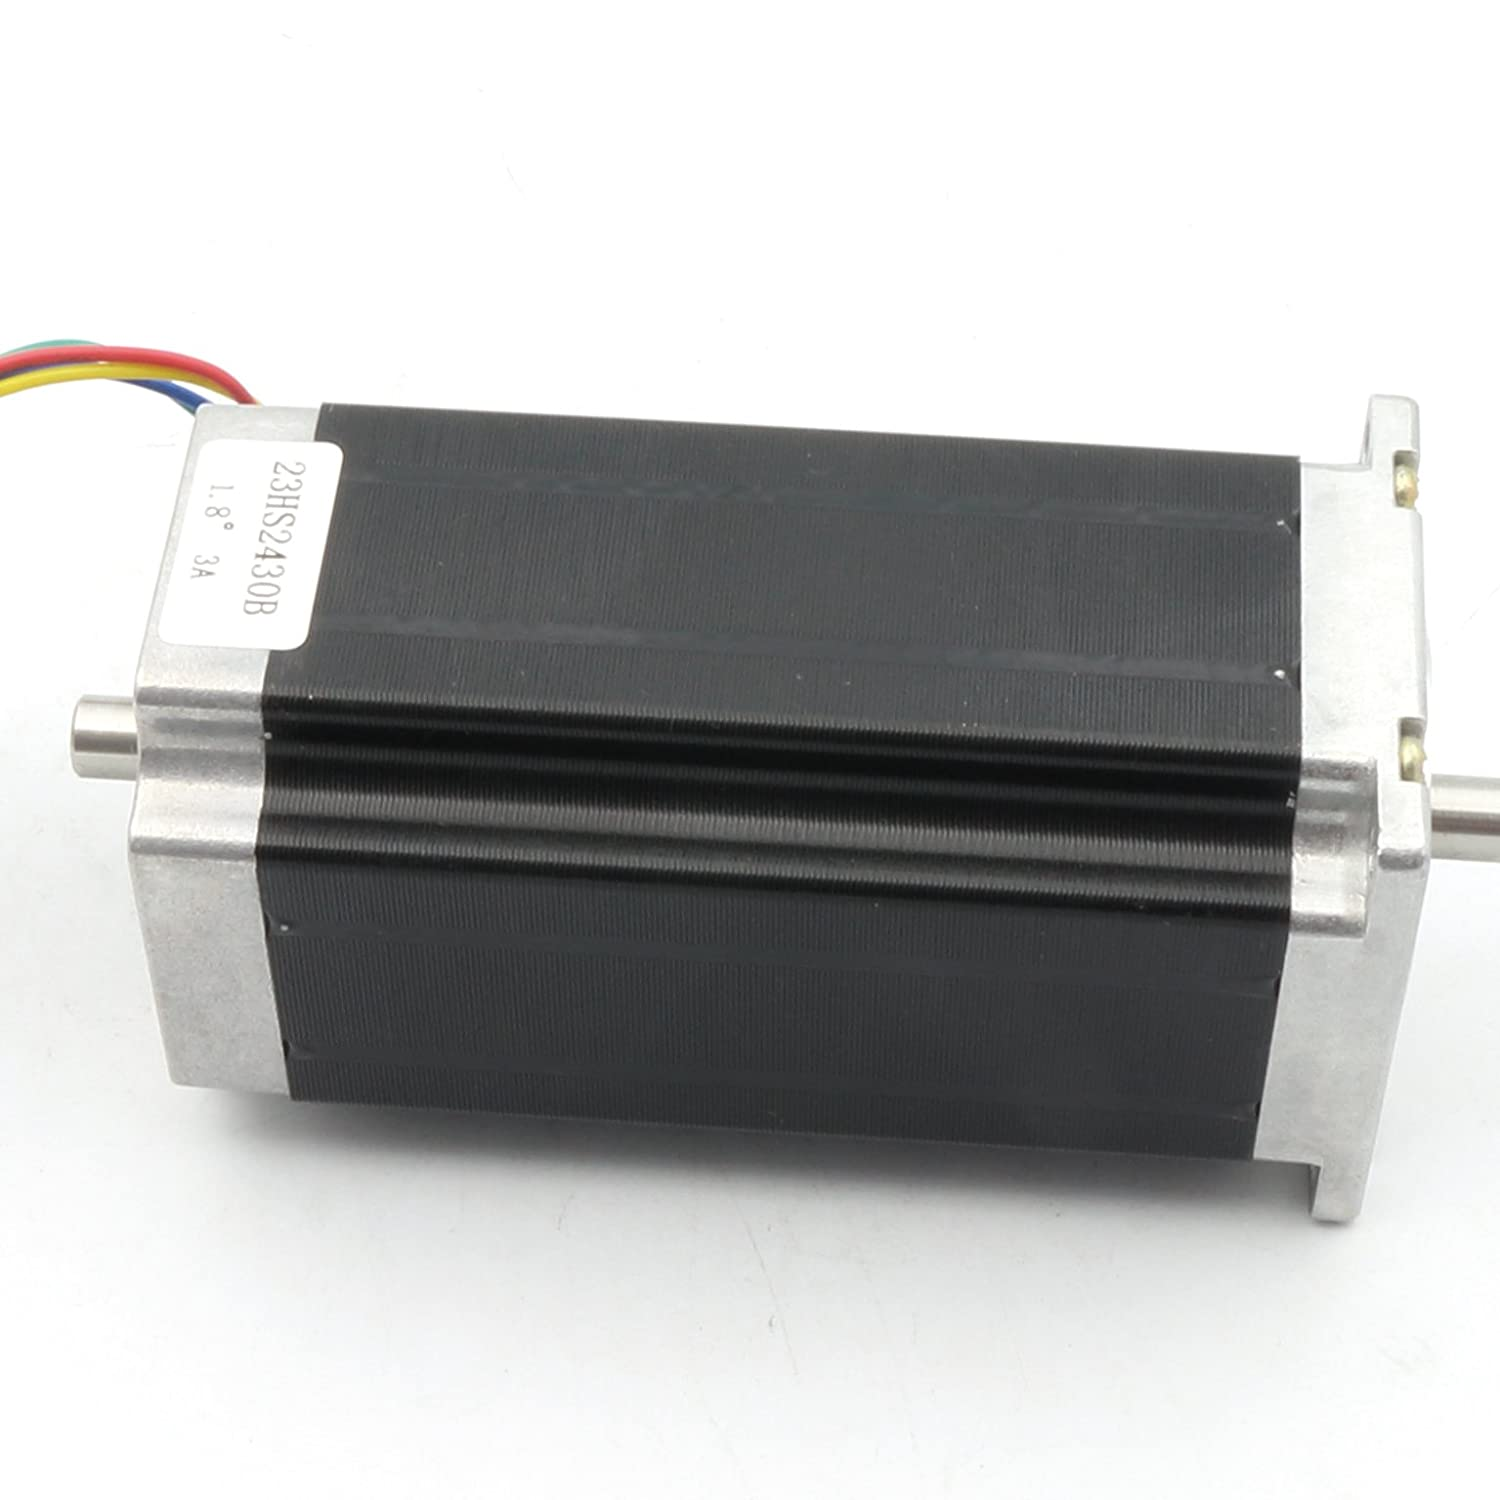 Nema23 112mm Stepper Motor 425oz-in 280Ncm 3A Dual Shaft For CNC Milling Lathe Router Engraving Machine